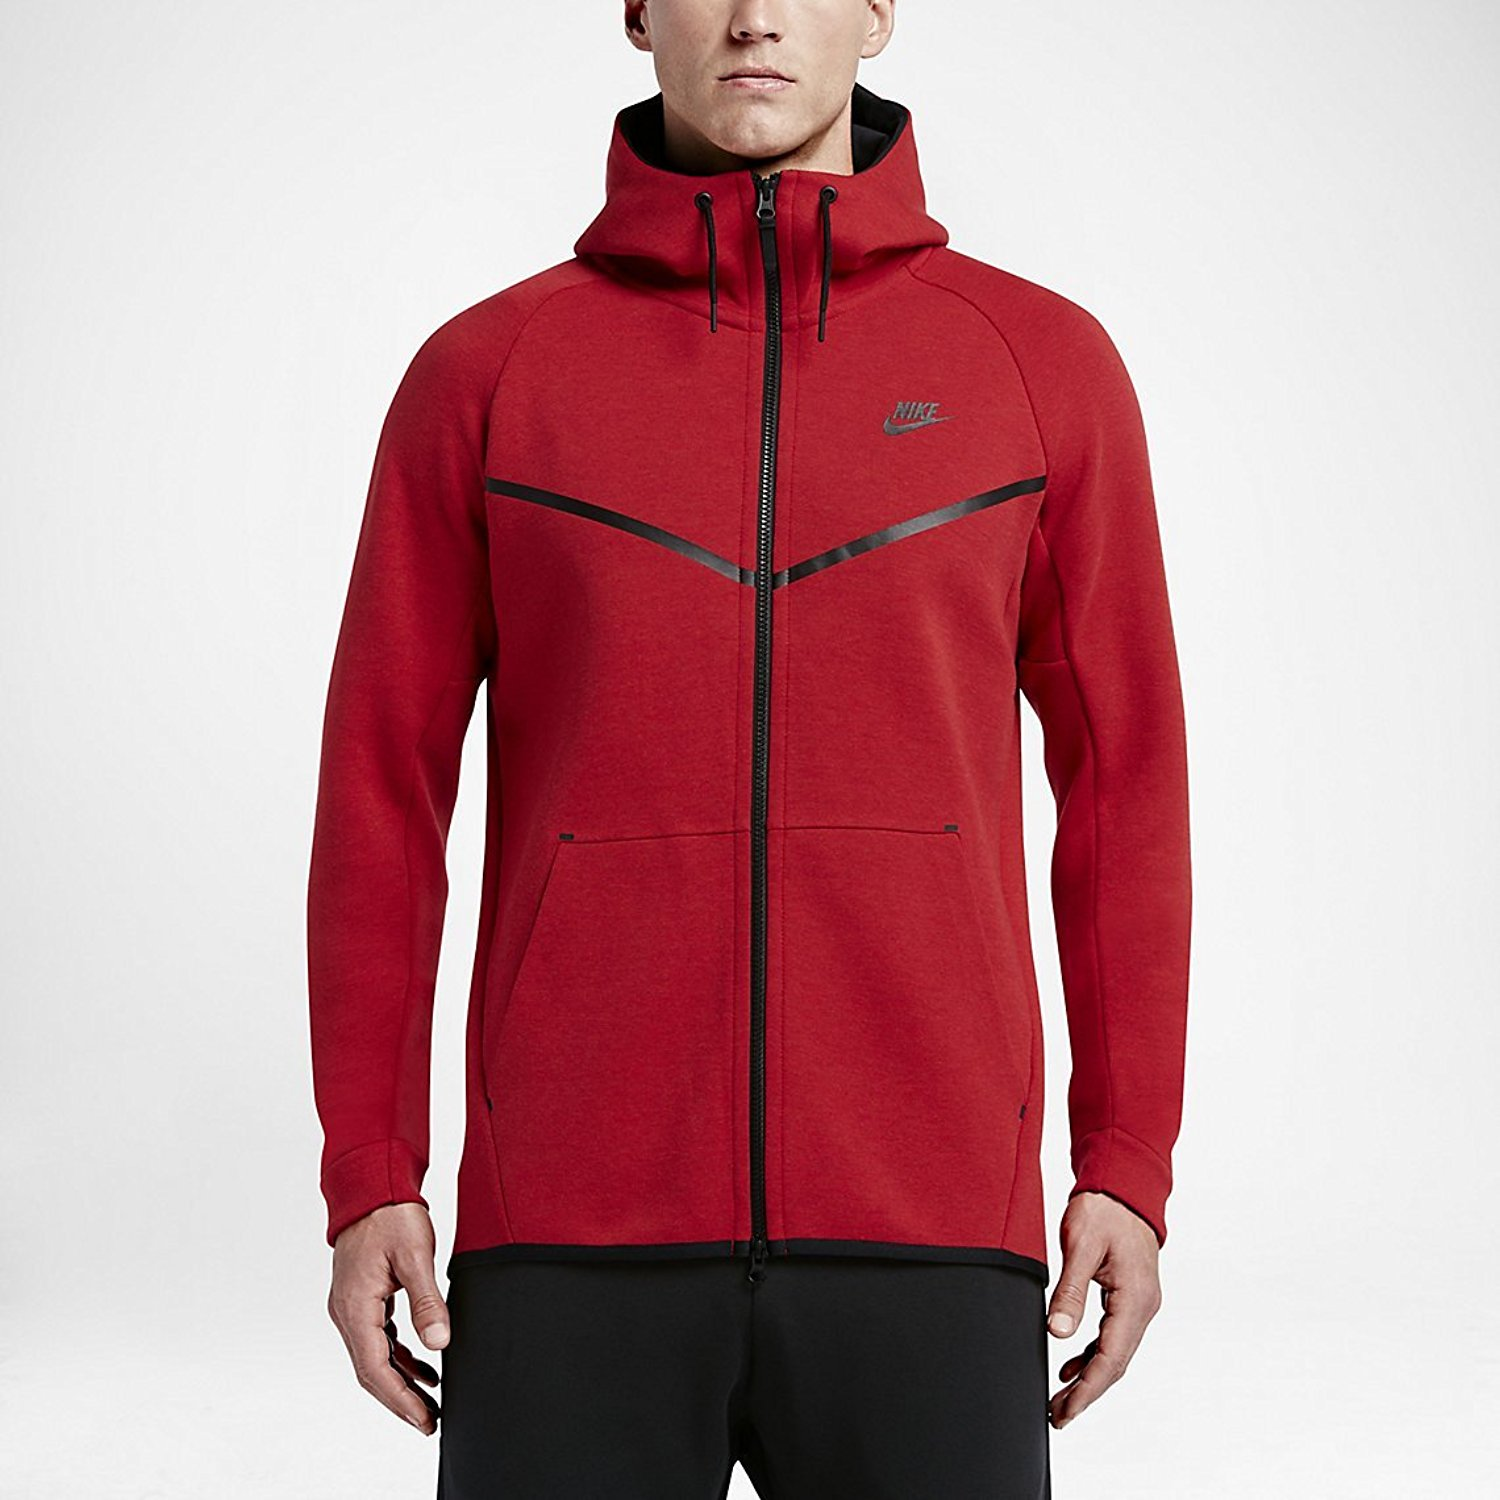 7391d4f0ddcc Get Quotations · Nike Mens Sportswear Tech Fleece Windrunner Hooded  Sweatshirt